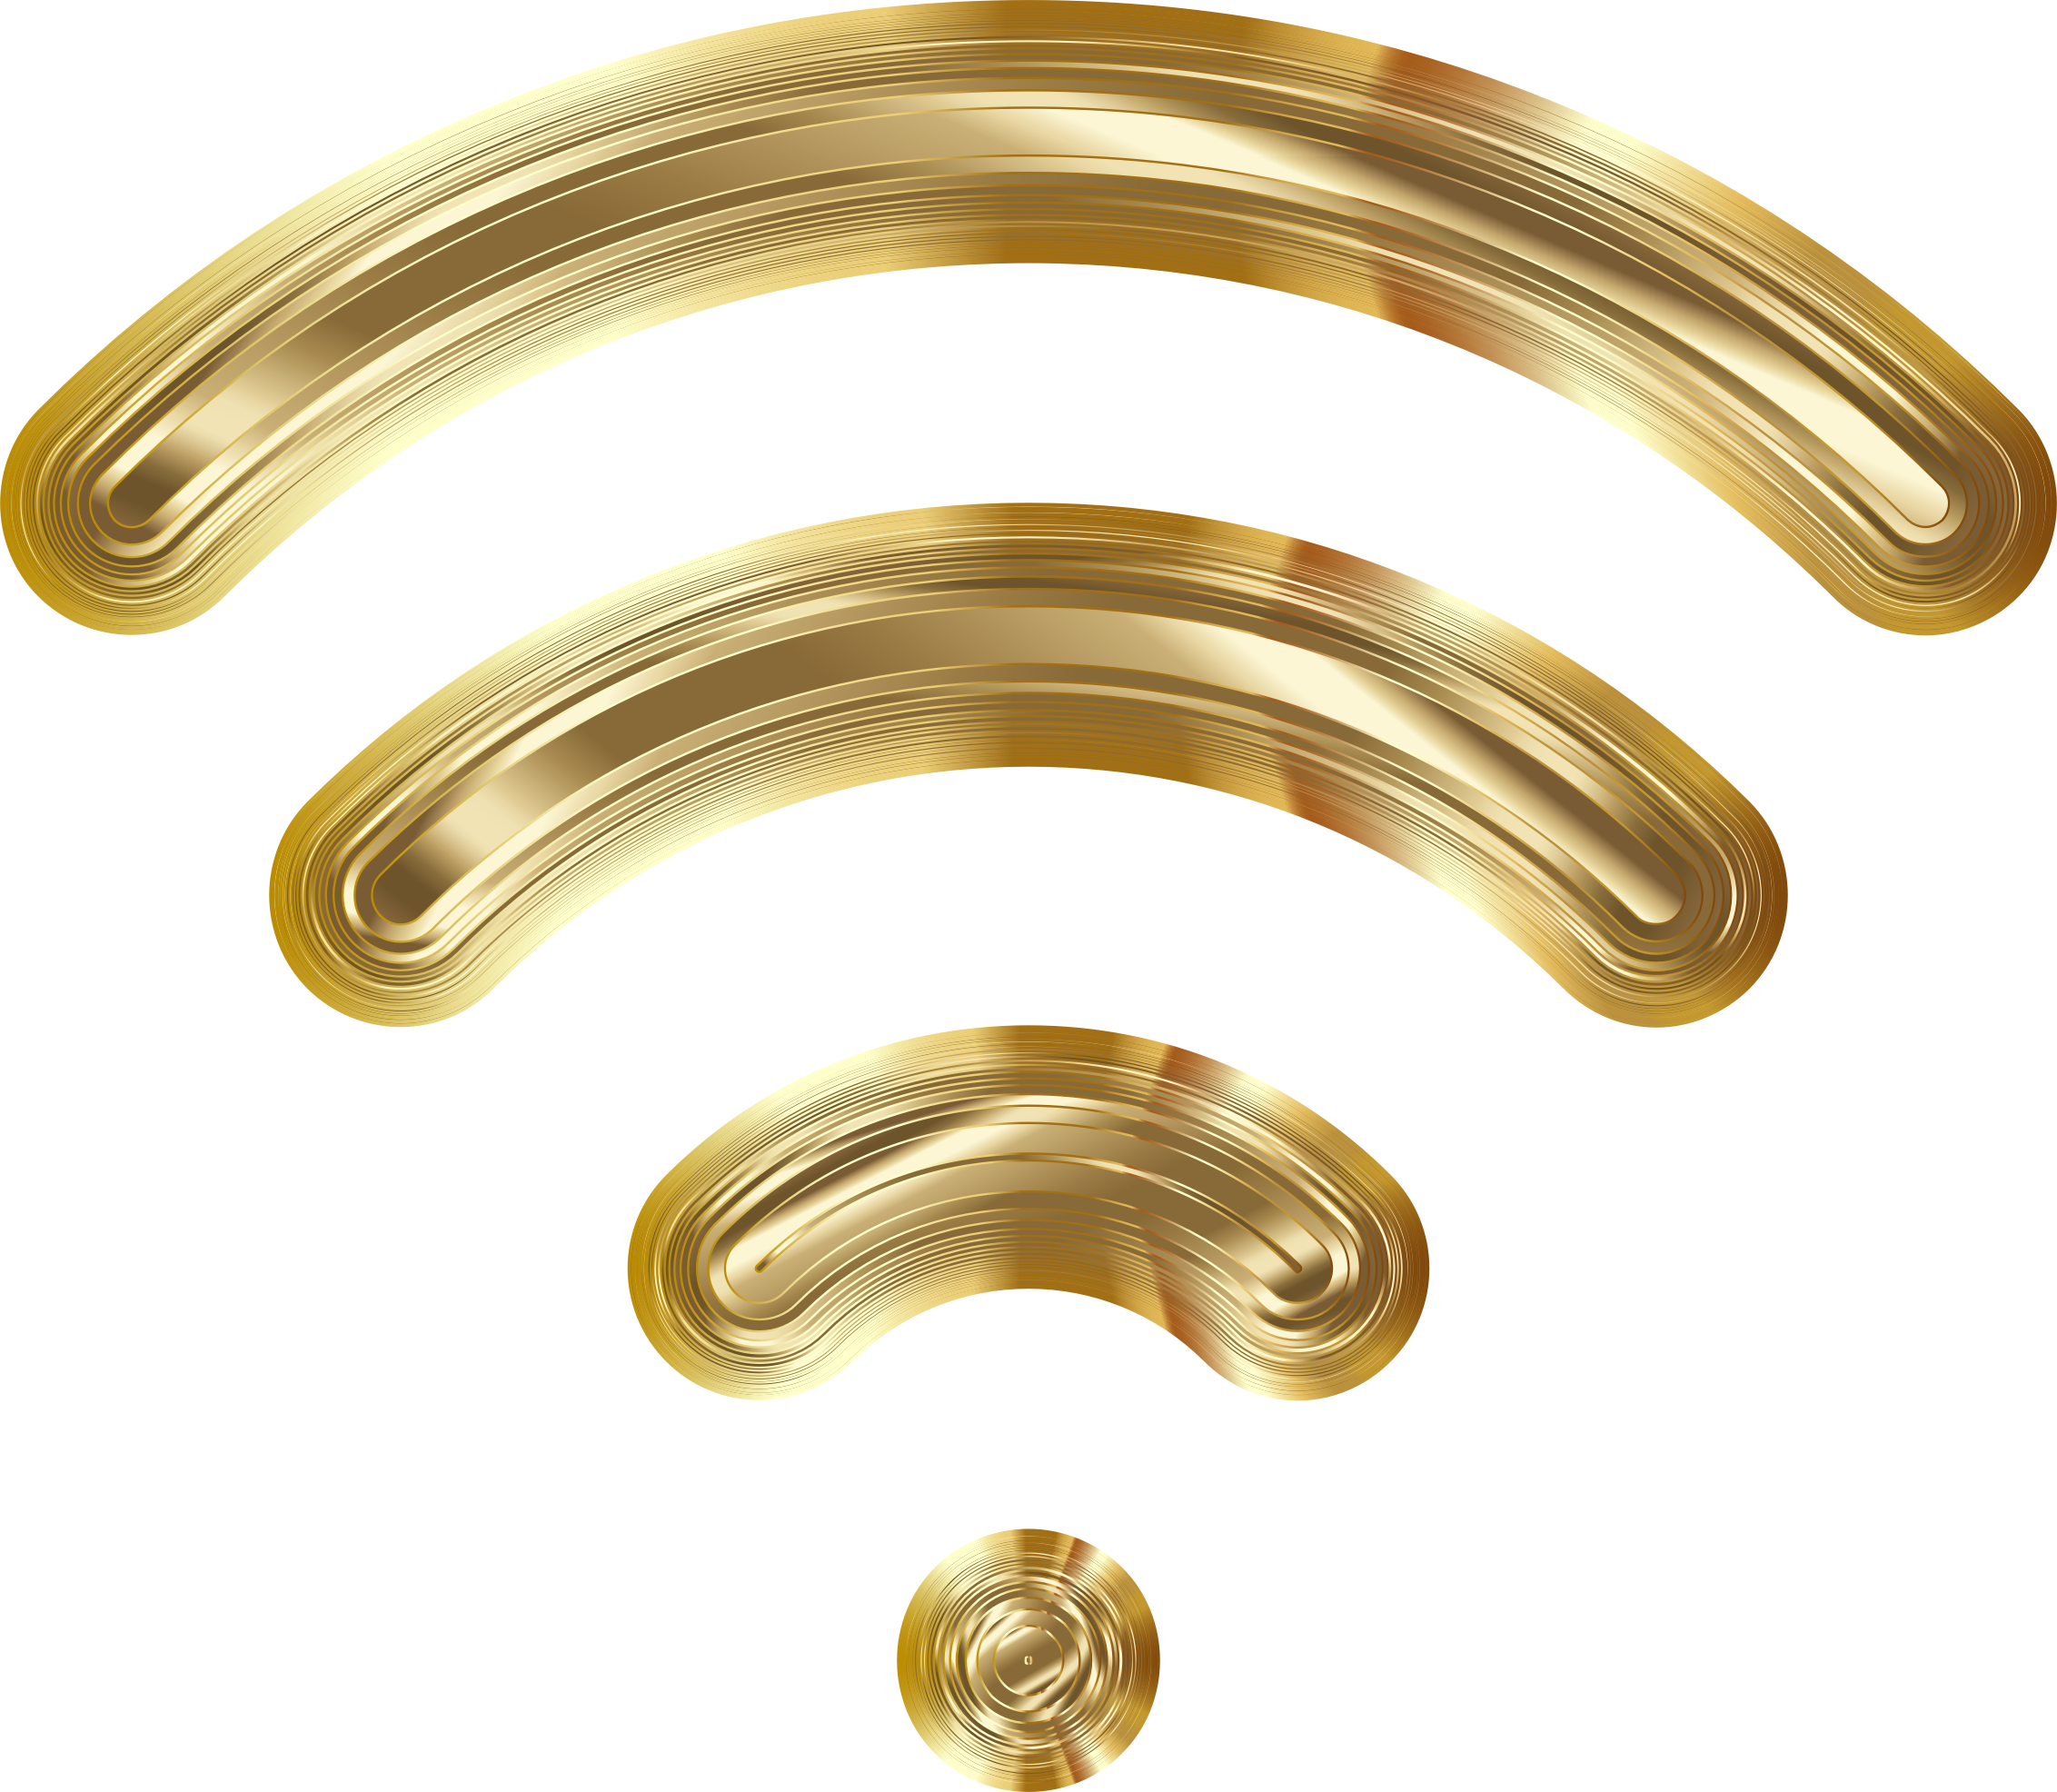 Wireless Signal Icon Enhanced 7 Variation 3 by GDJ